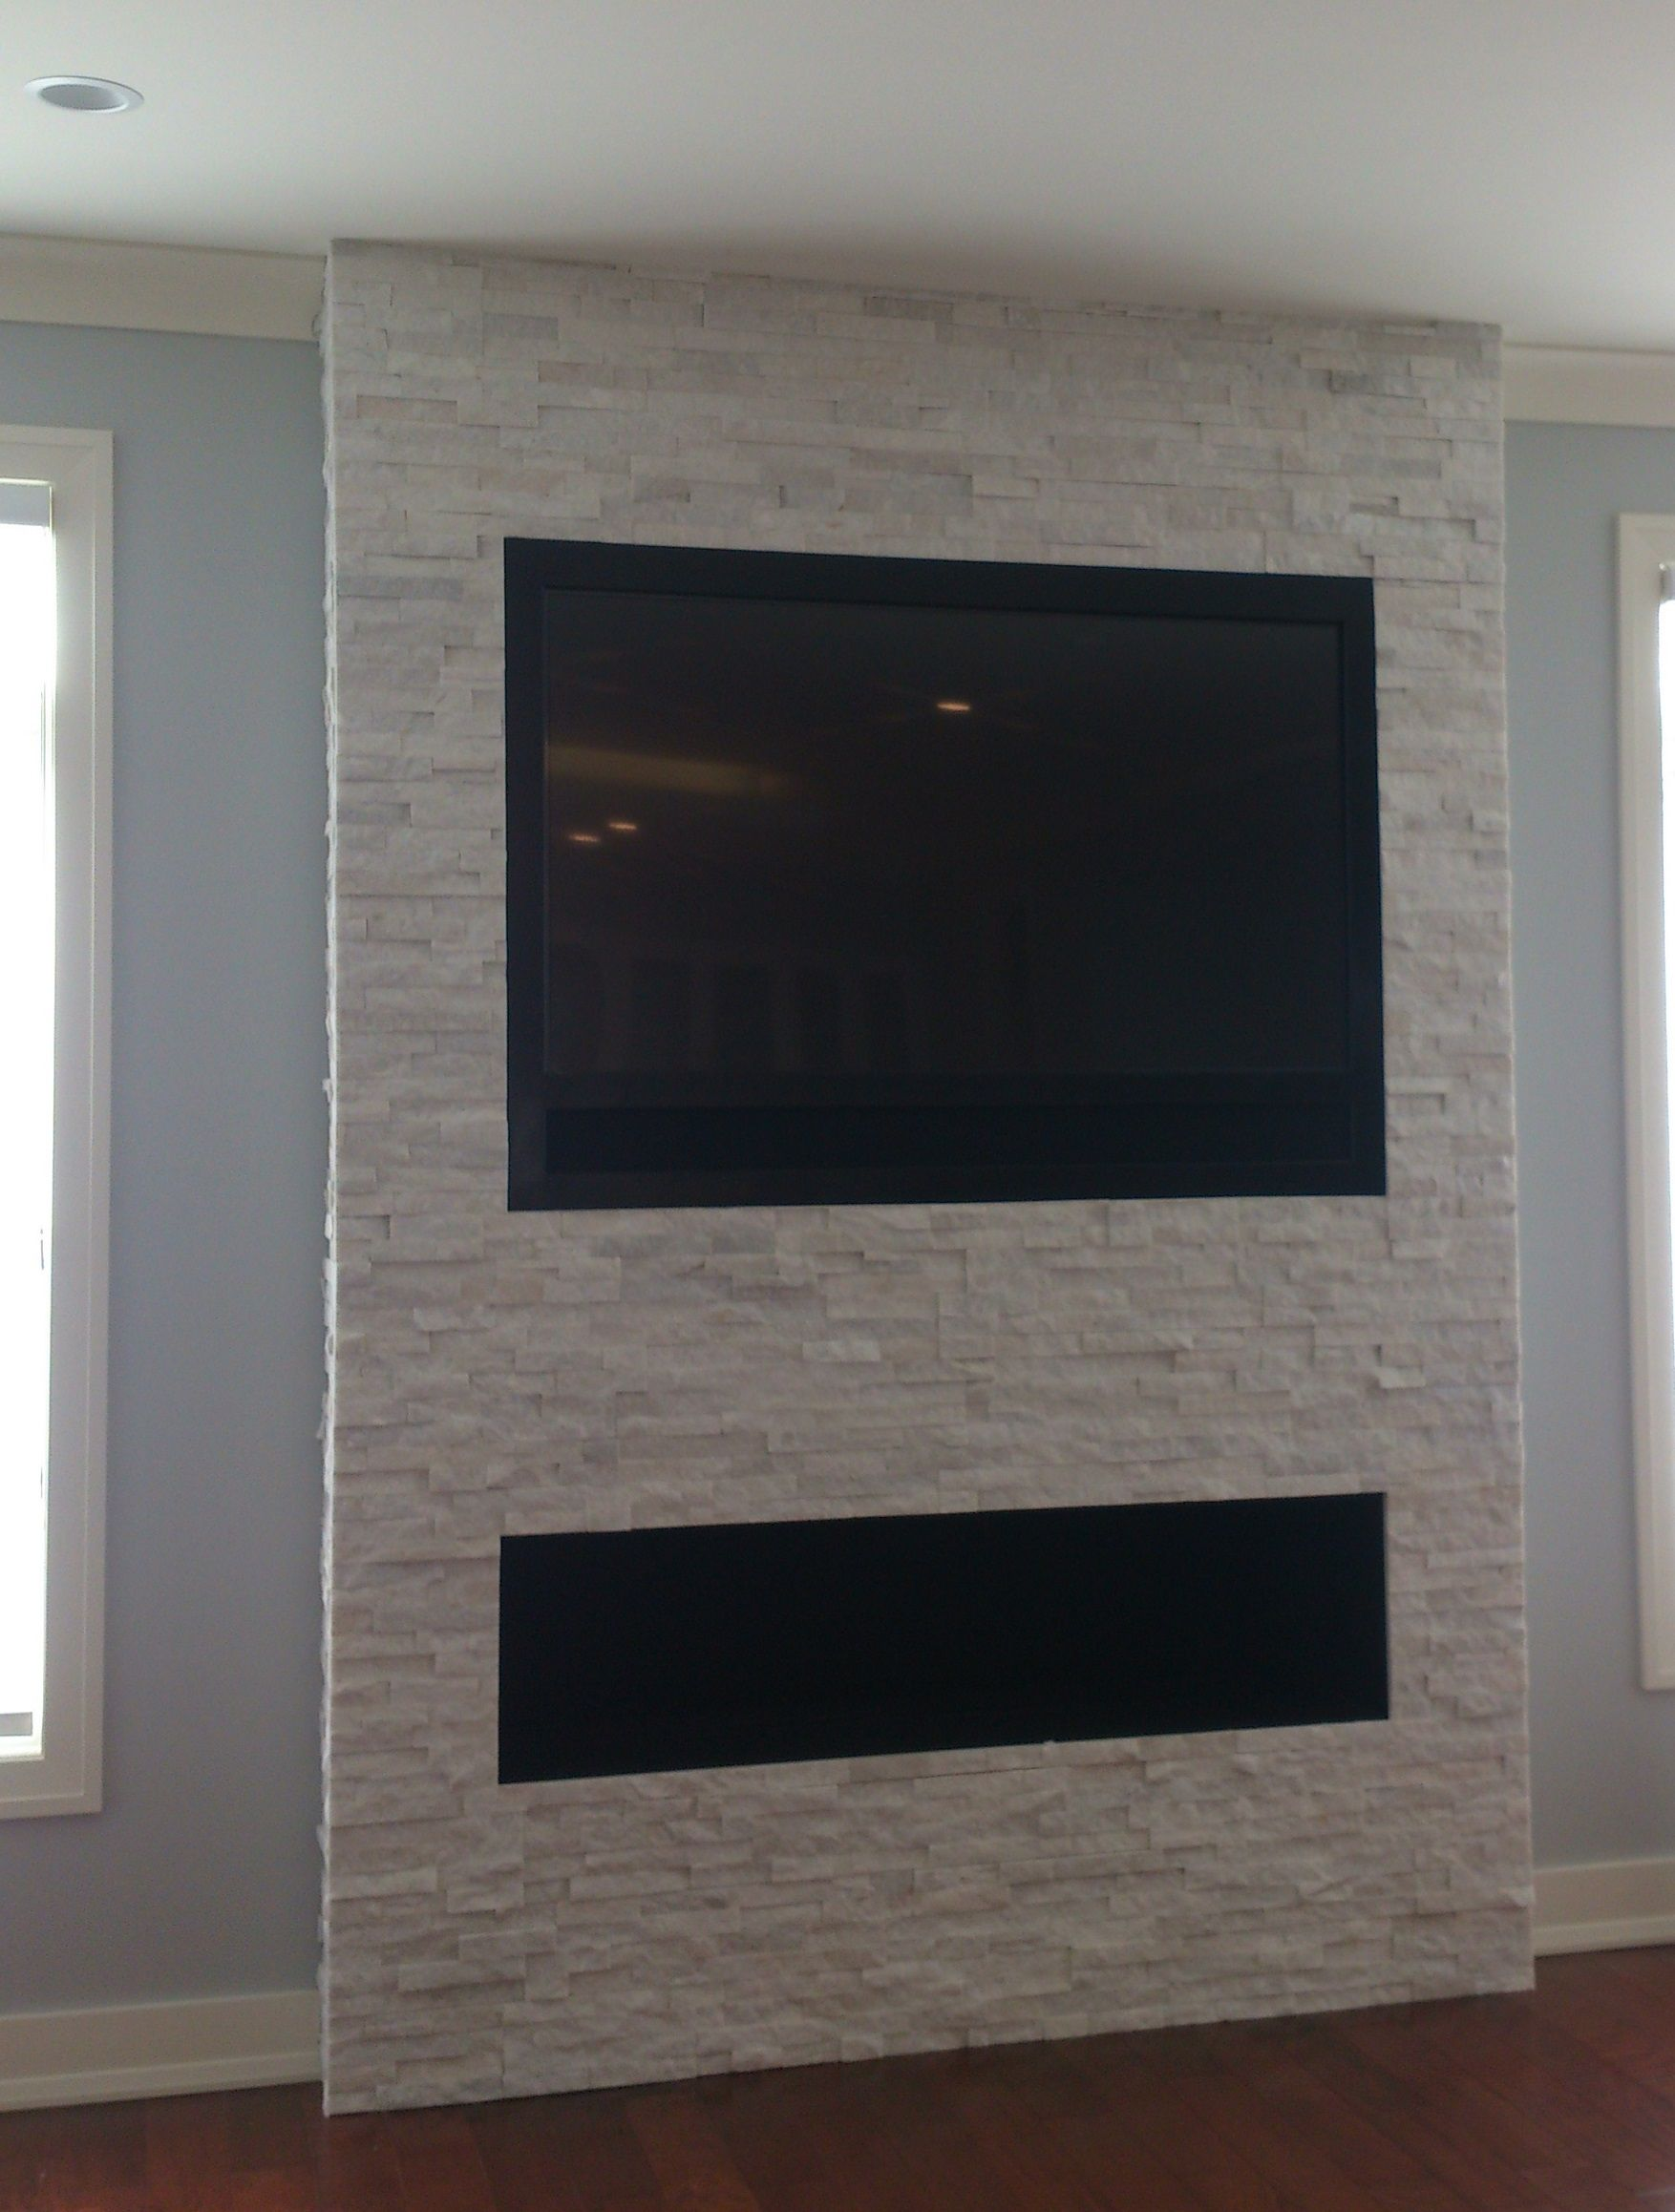 Wondering how to mount a TV over a fireplace without a ...